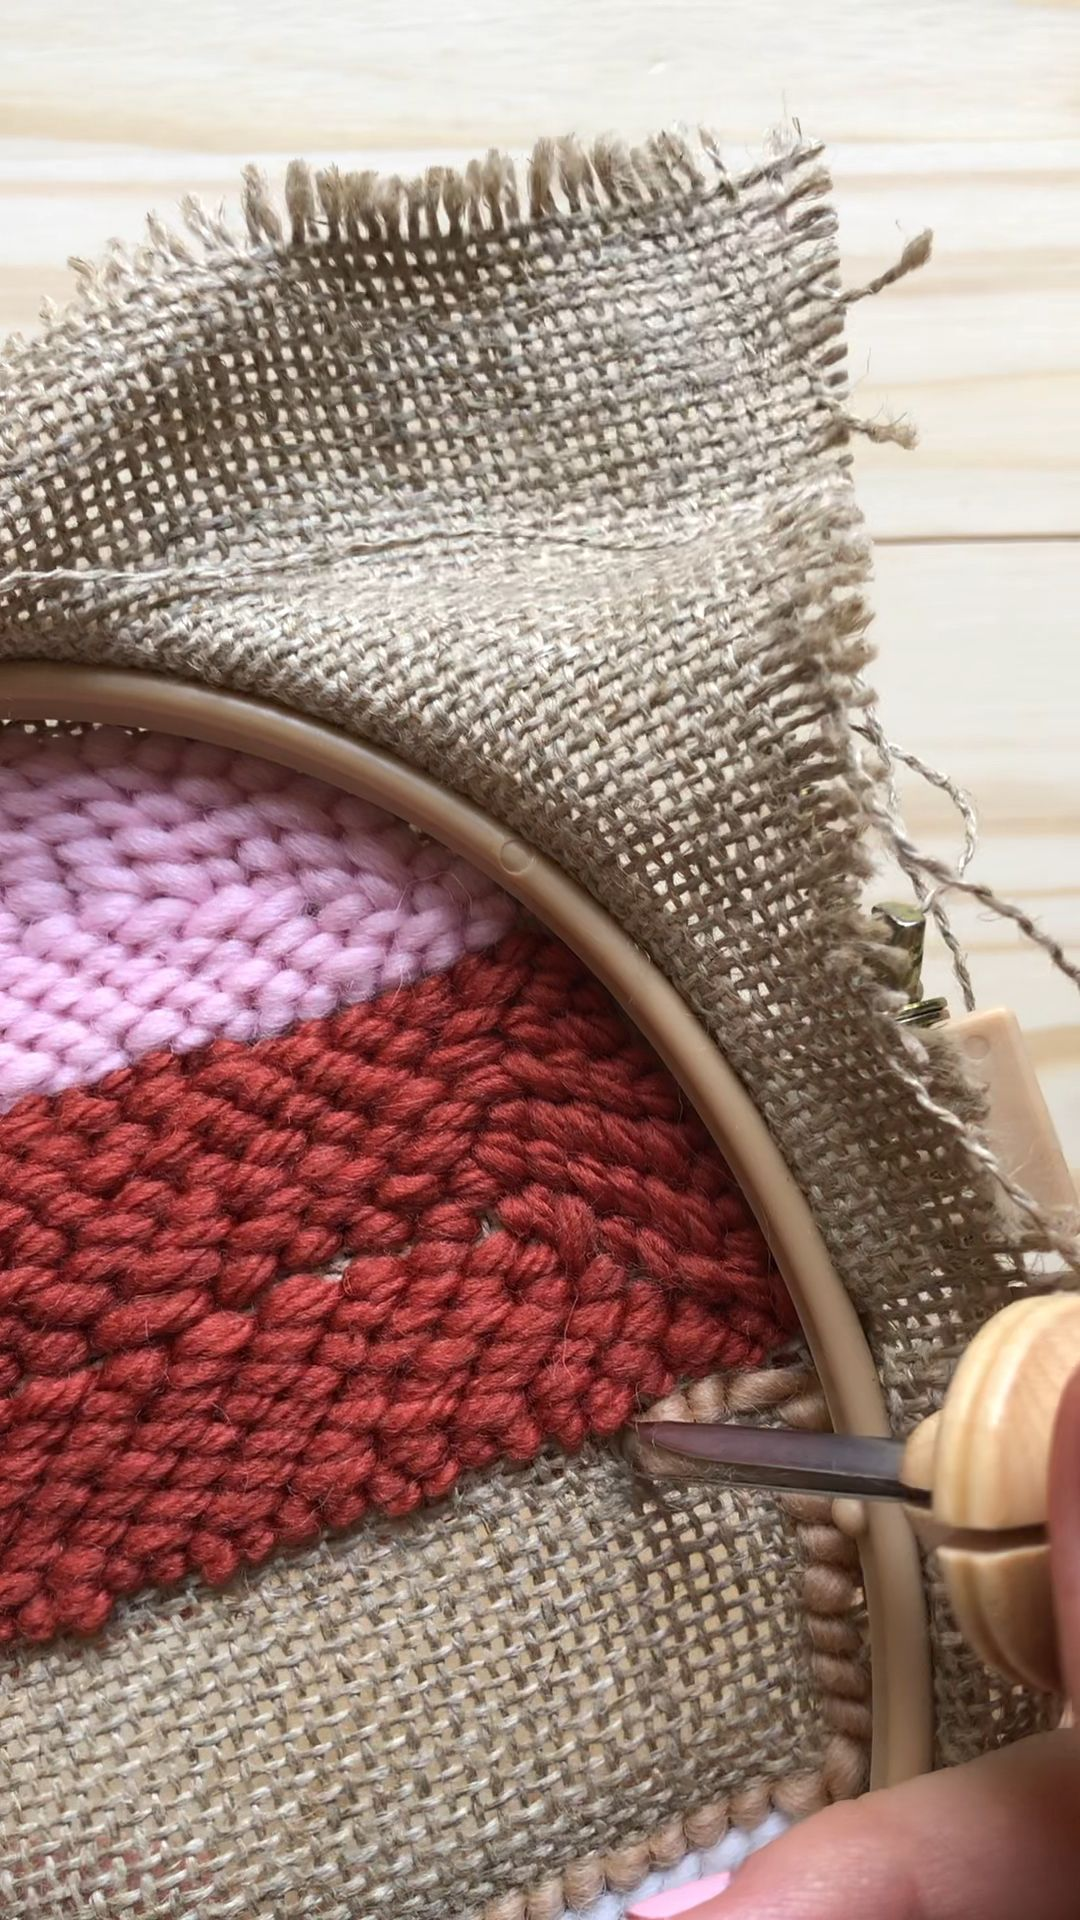 By keeping your stitches close, you make a defined line between color sections.